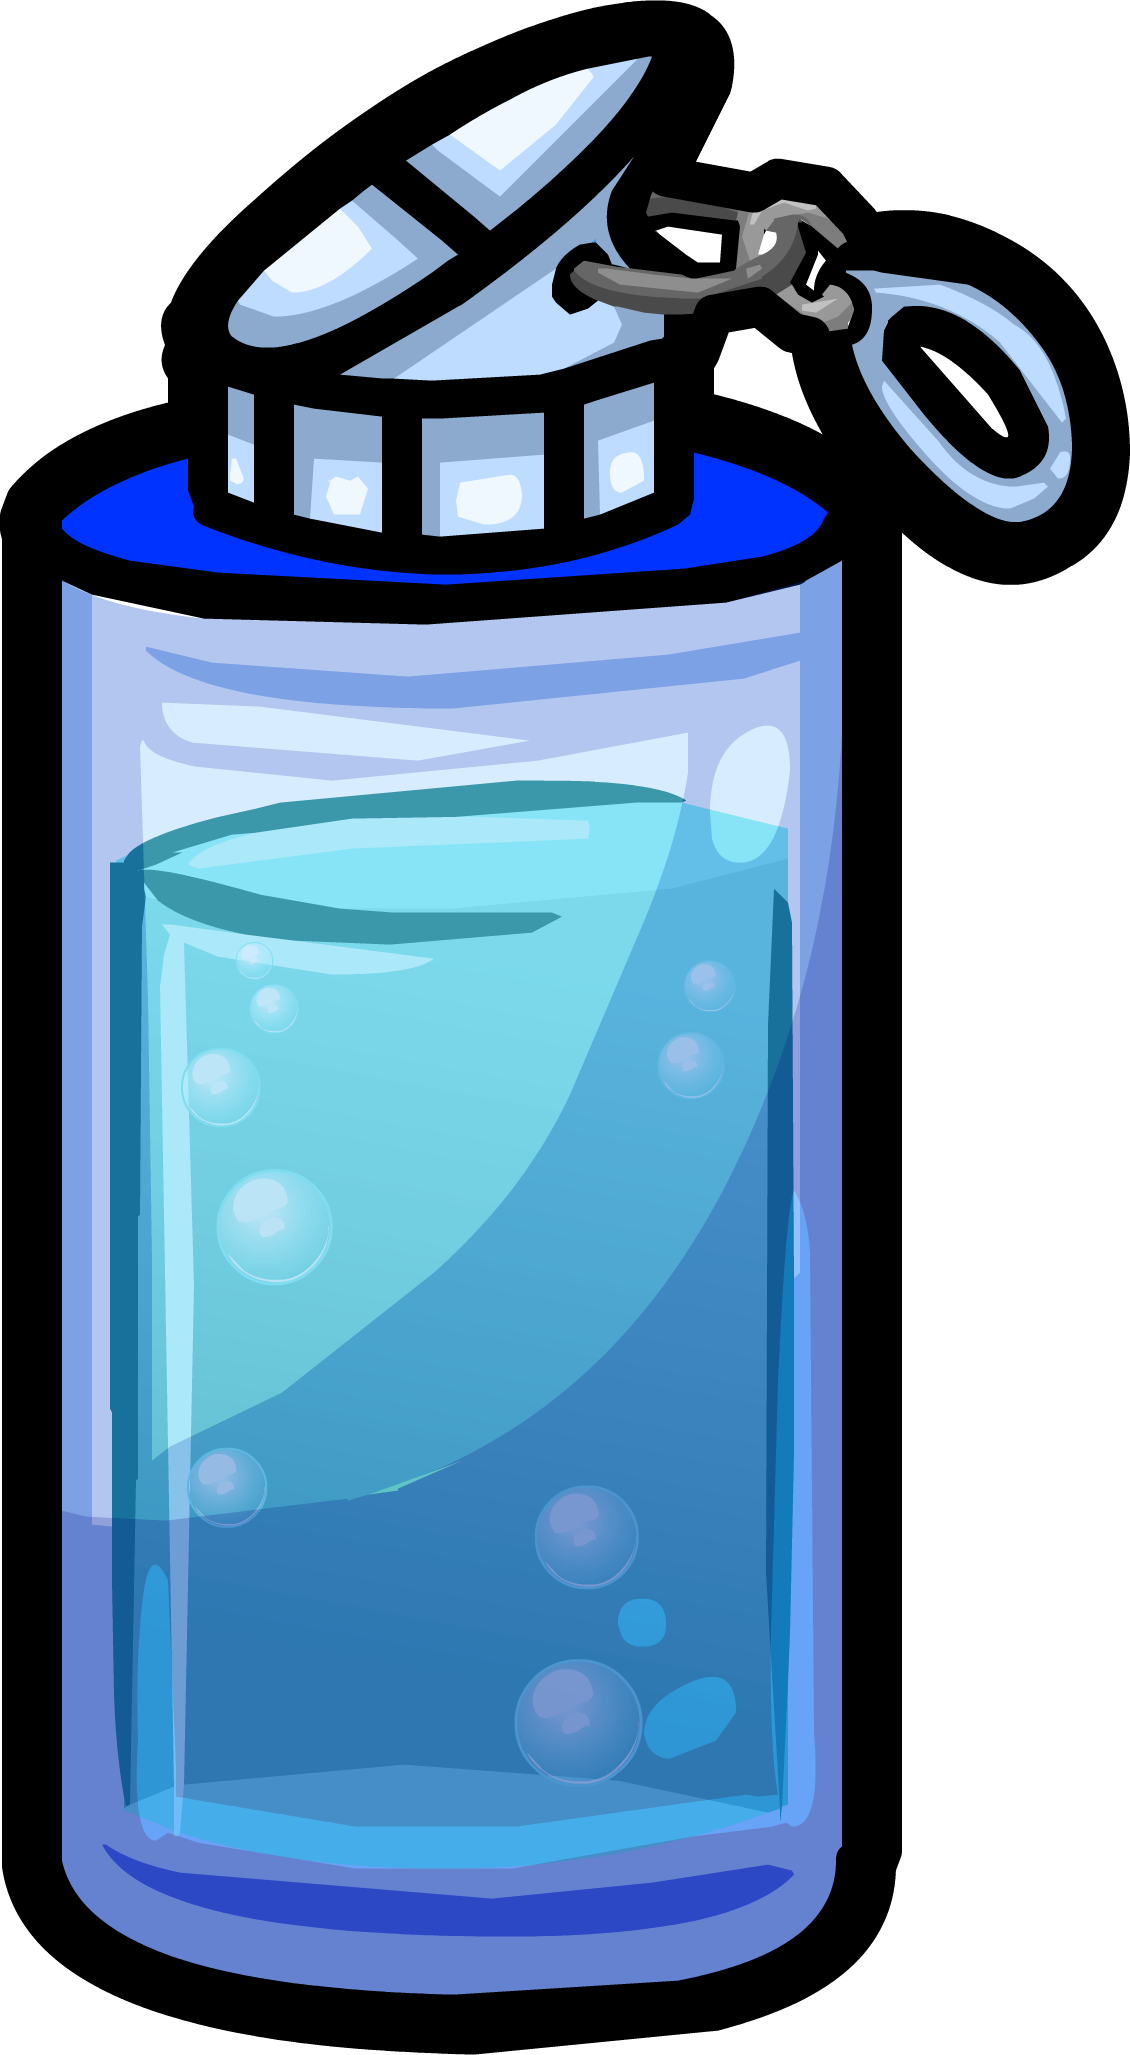 Water clipart h2o. Blue bottle club penguin